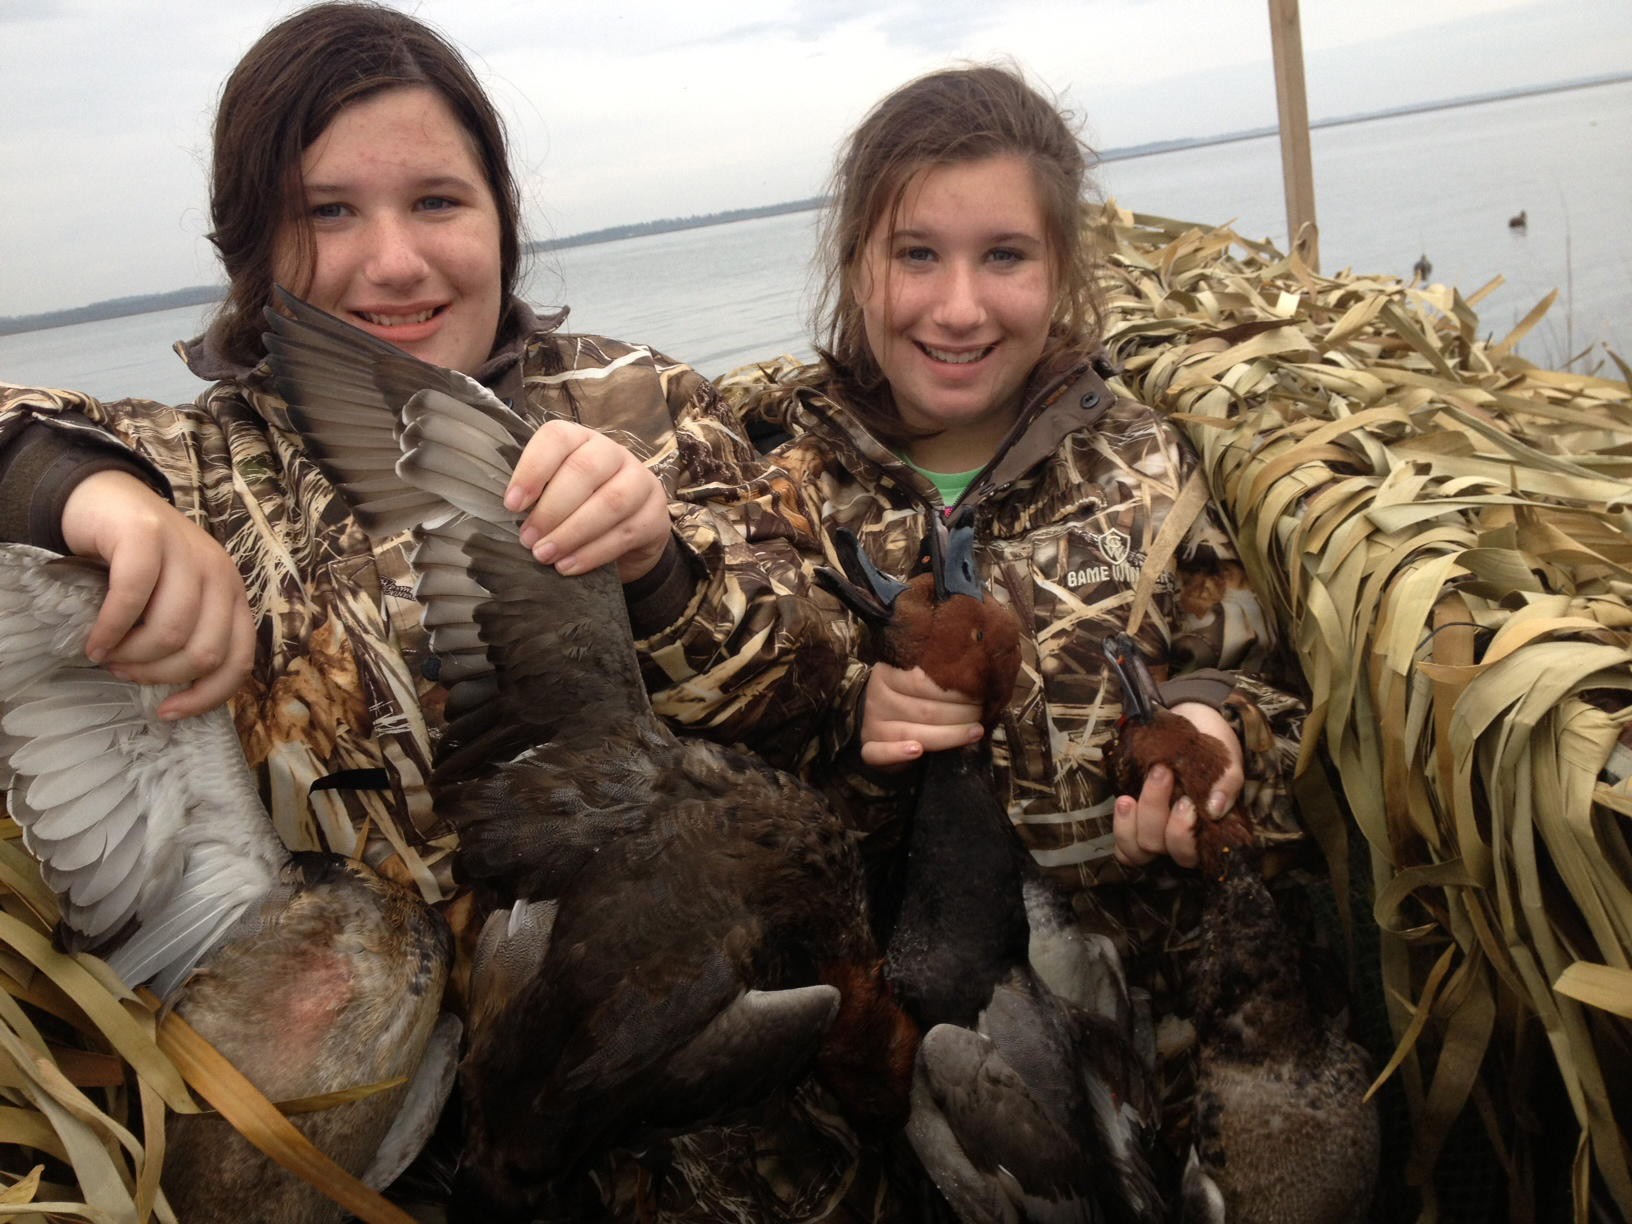 The Serra twins took on Mobile bay duck hunting and had tremendous success.